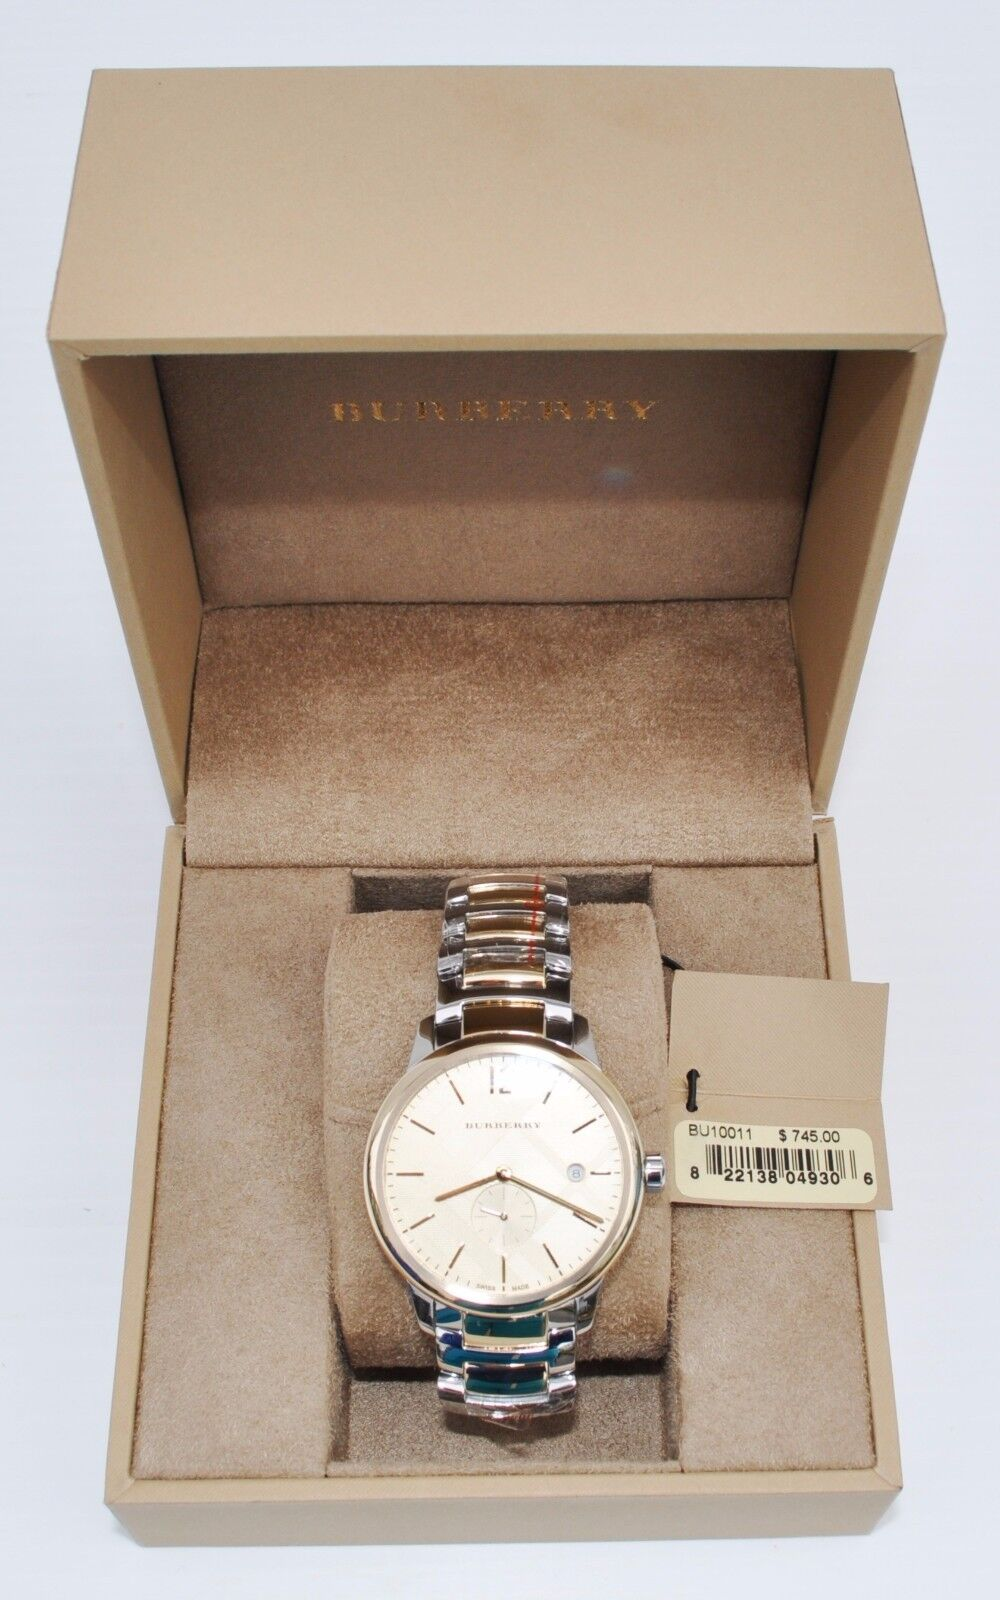 Burberry Mens The Classic Round TwoTone Stainless Steel Watch MSRP 745